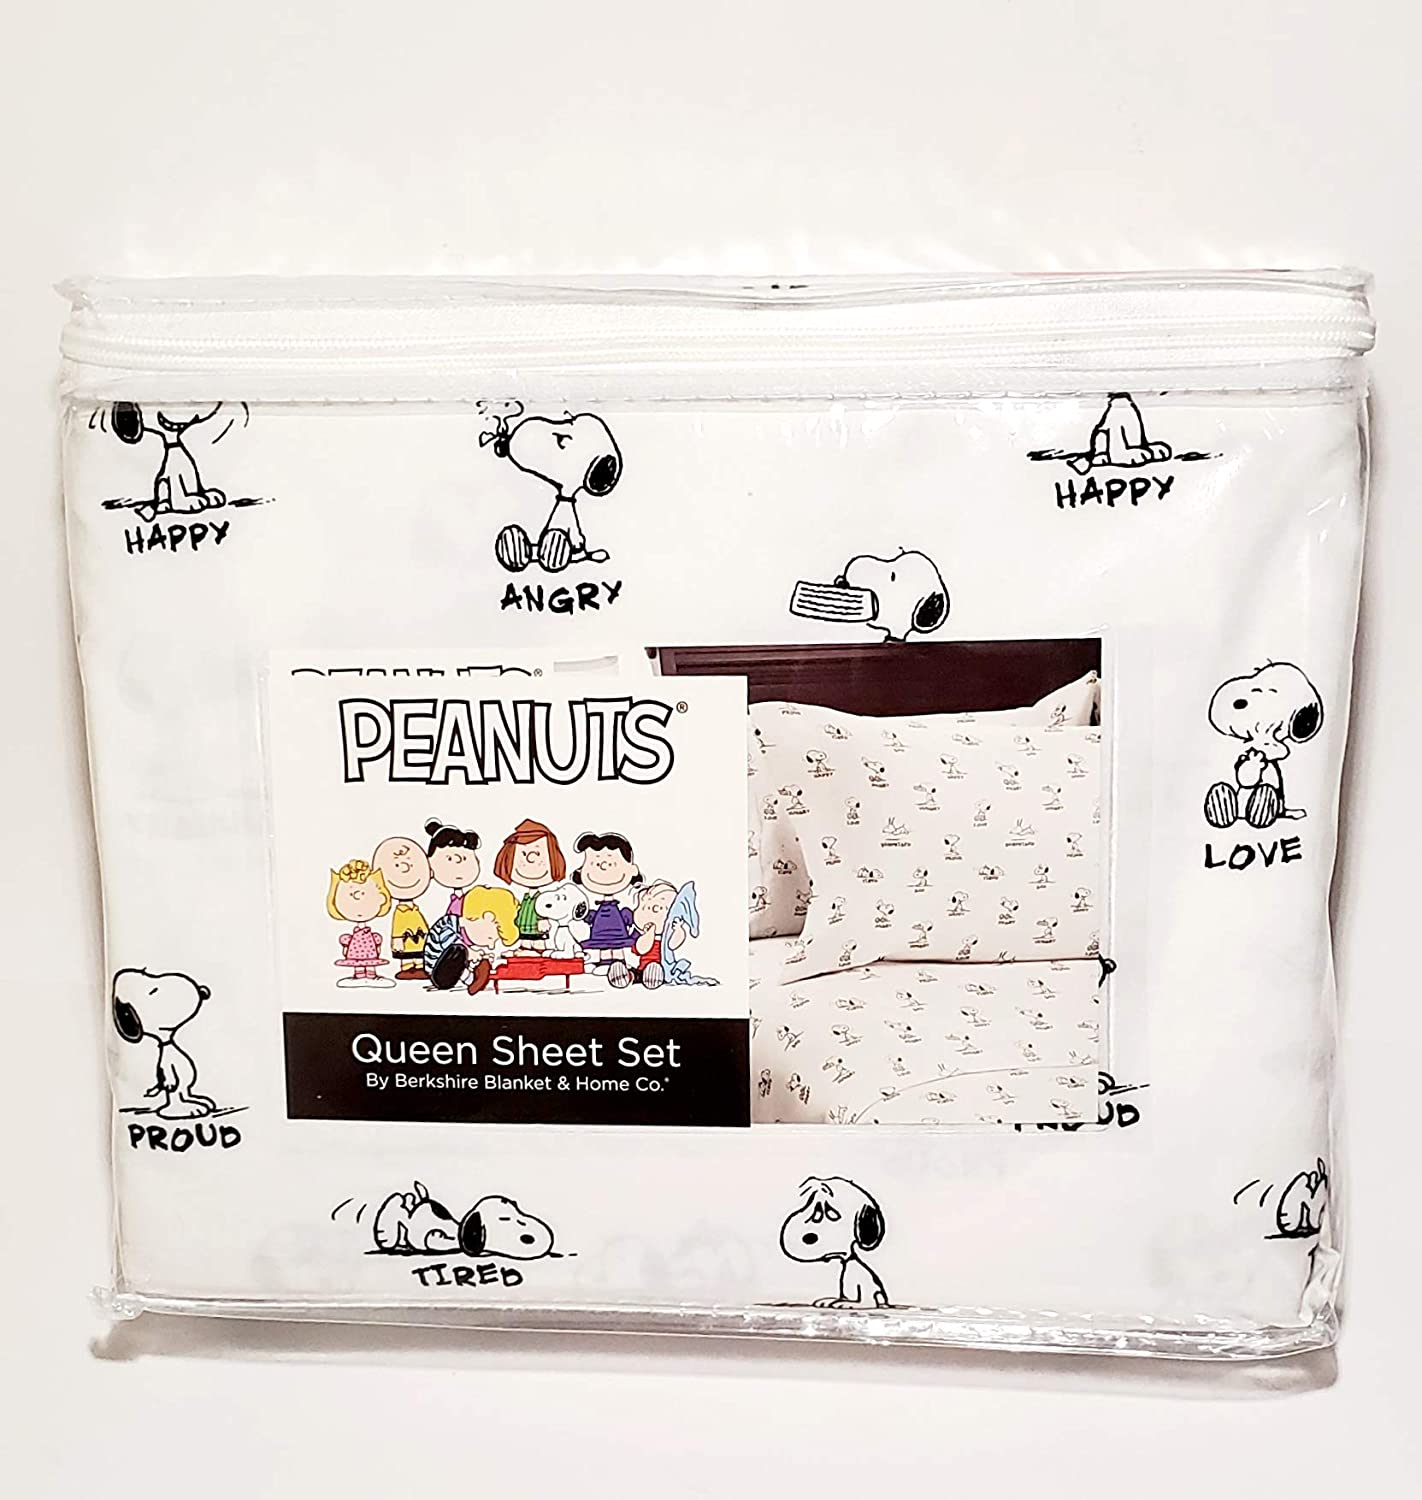 Black excellence Elegant White The Many Moods of Peanuts Snoopy Tired Lov Happy -